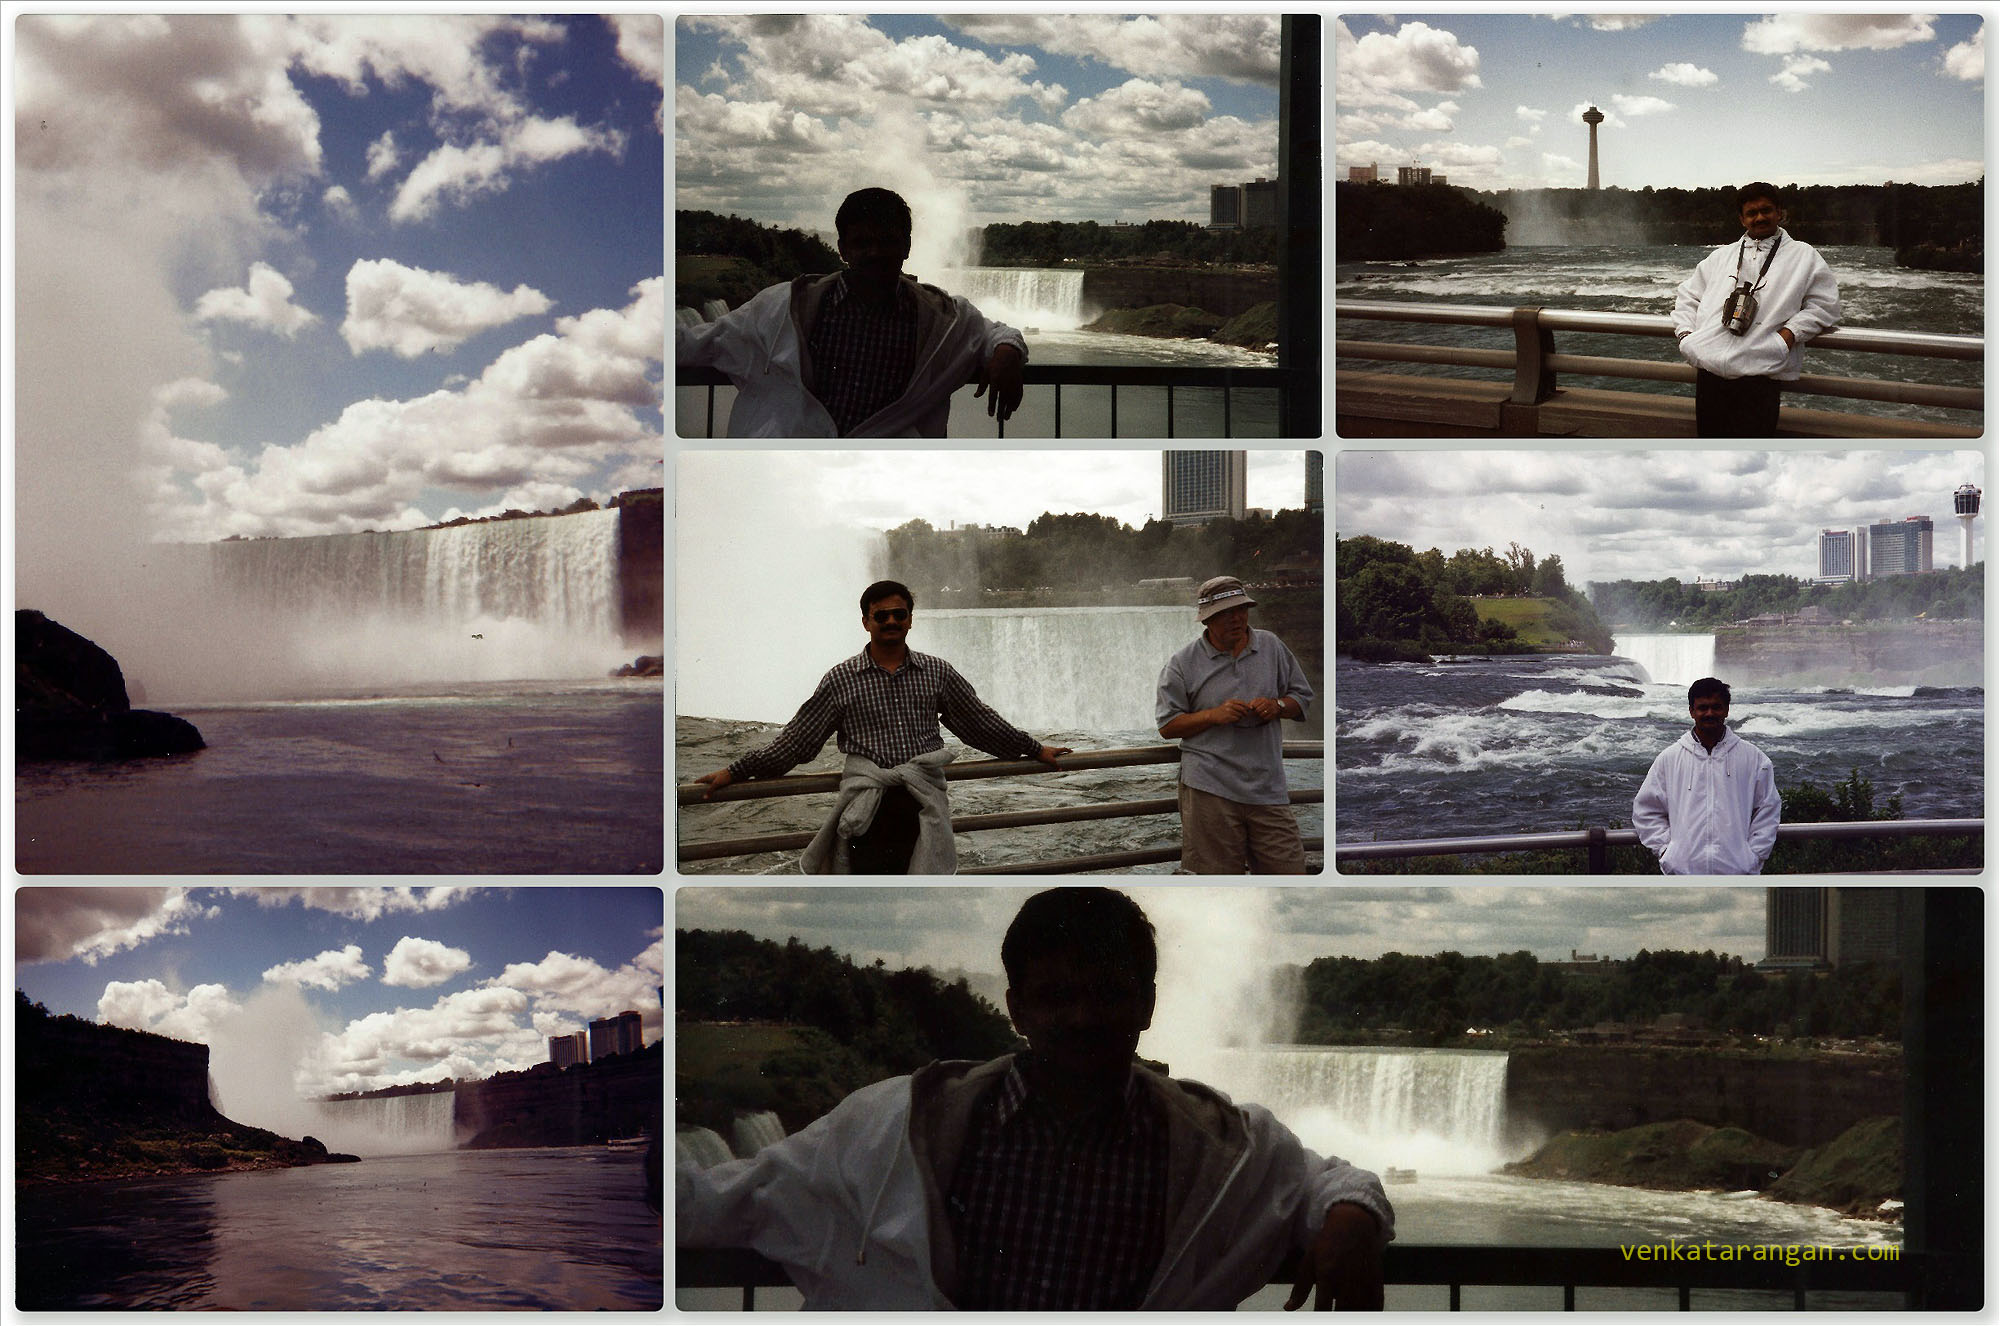 In 1999, Venkatarangan posing in Niagara Falls, New York